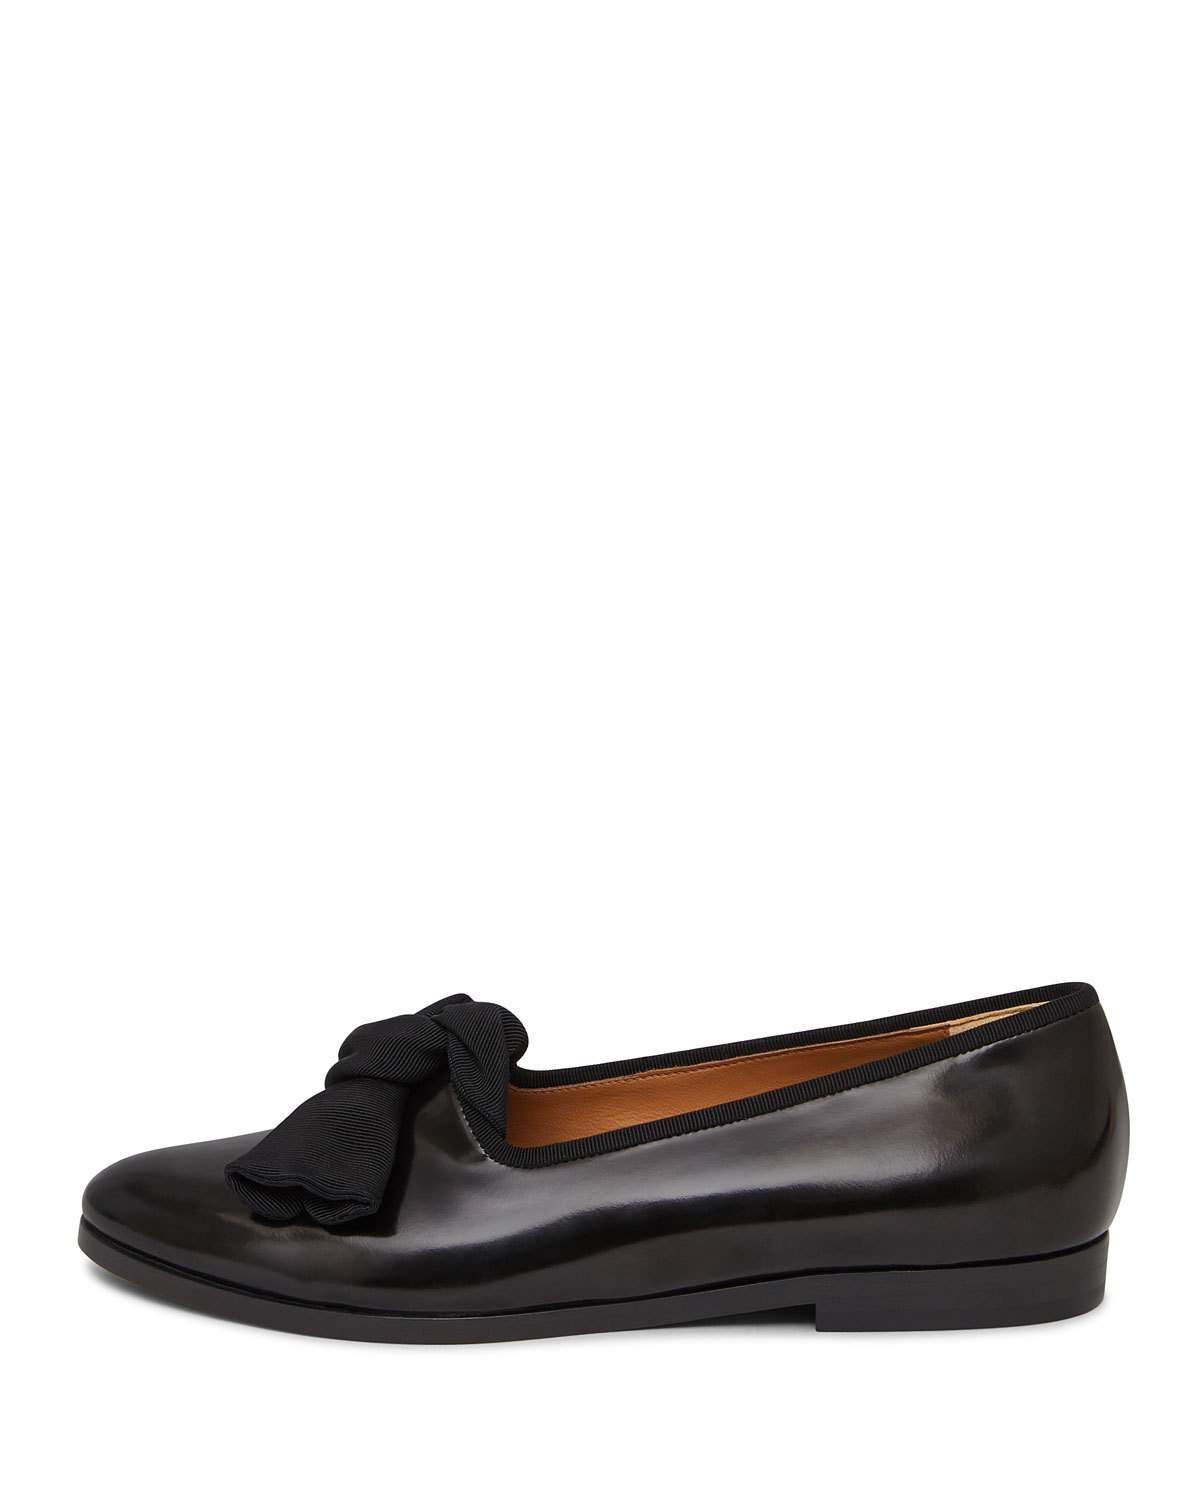 65c6bc31733 Mansur Gavriel Mixed Leather Bow Flat Loafer